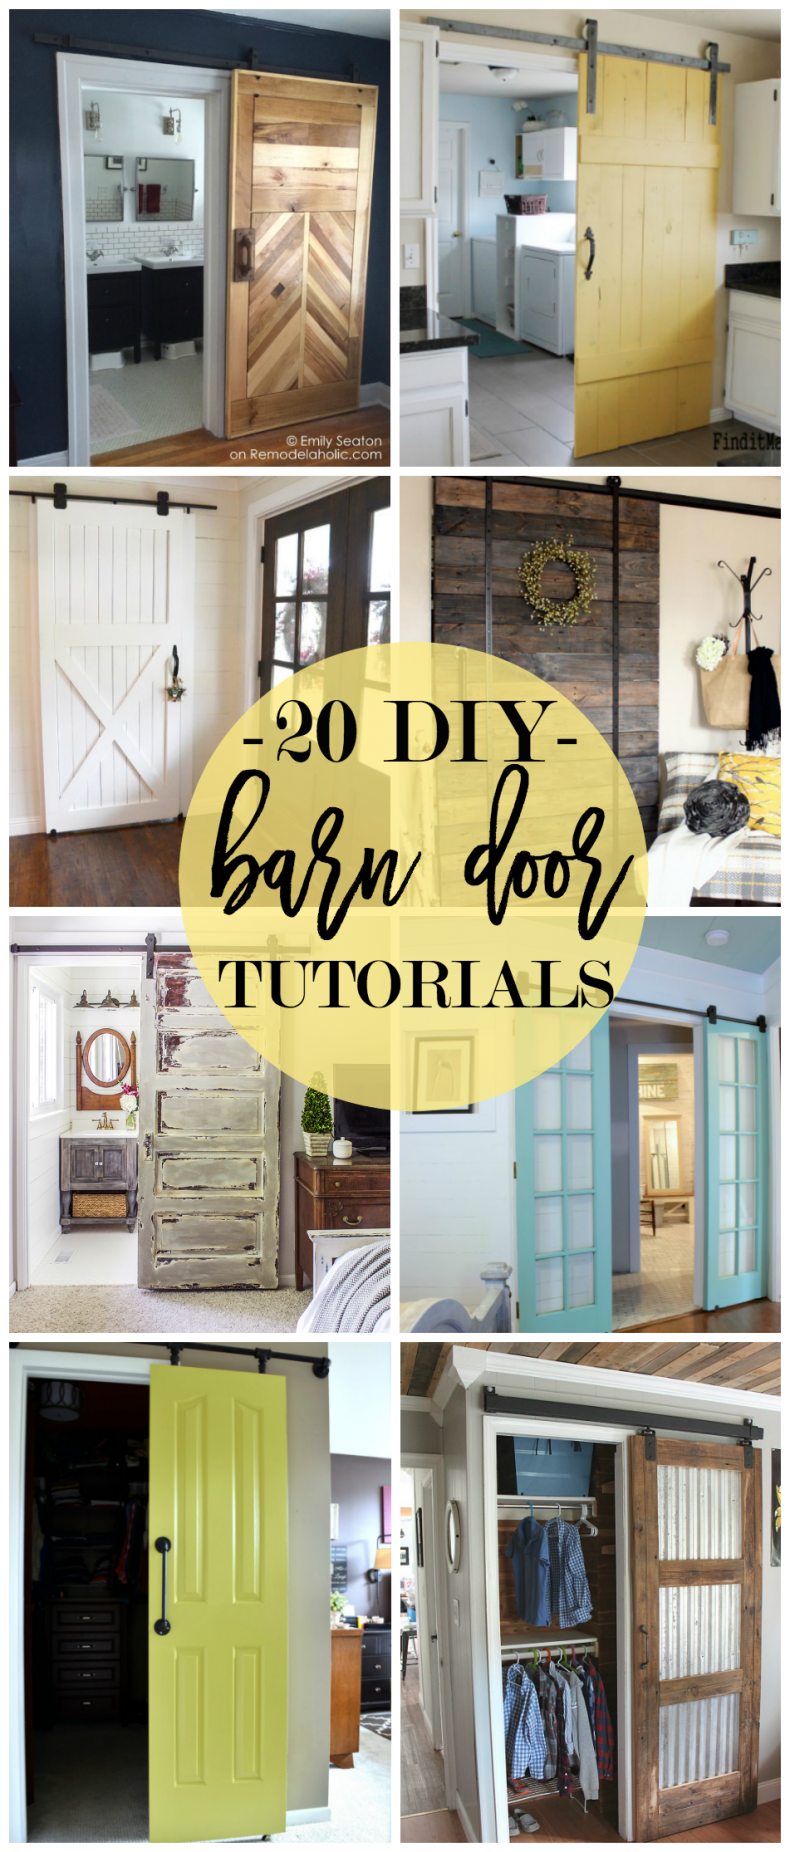 20 DIY Barn Door Tutorials House Door Design Ideas Html on house facade design ideas, house entry design ideas, house courtyard design ideas, house wall design ideas, house entrance design ideas, house exterior design ideas, house fence design ideas, house room design ideas, house deck design ideas, house siding design ideas, house floor design ideas,